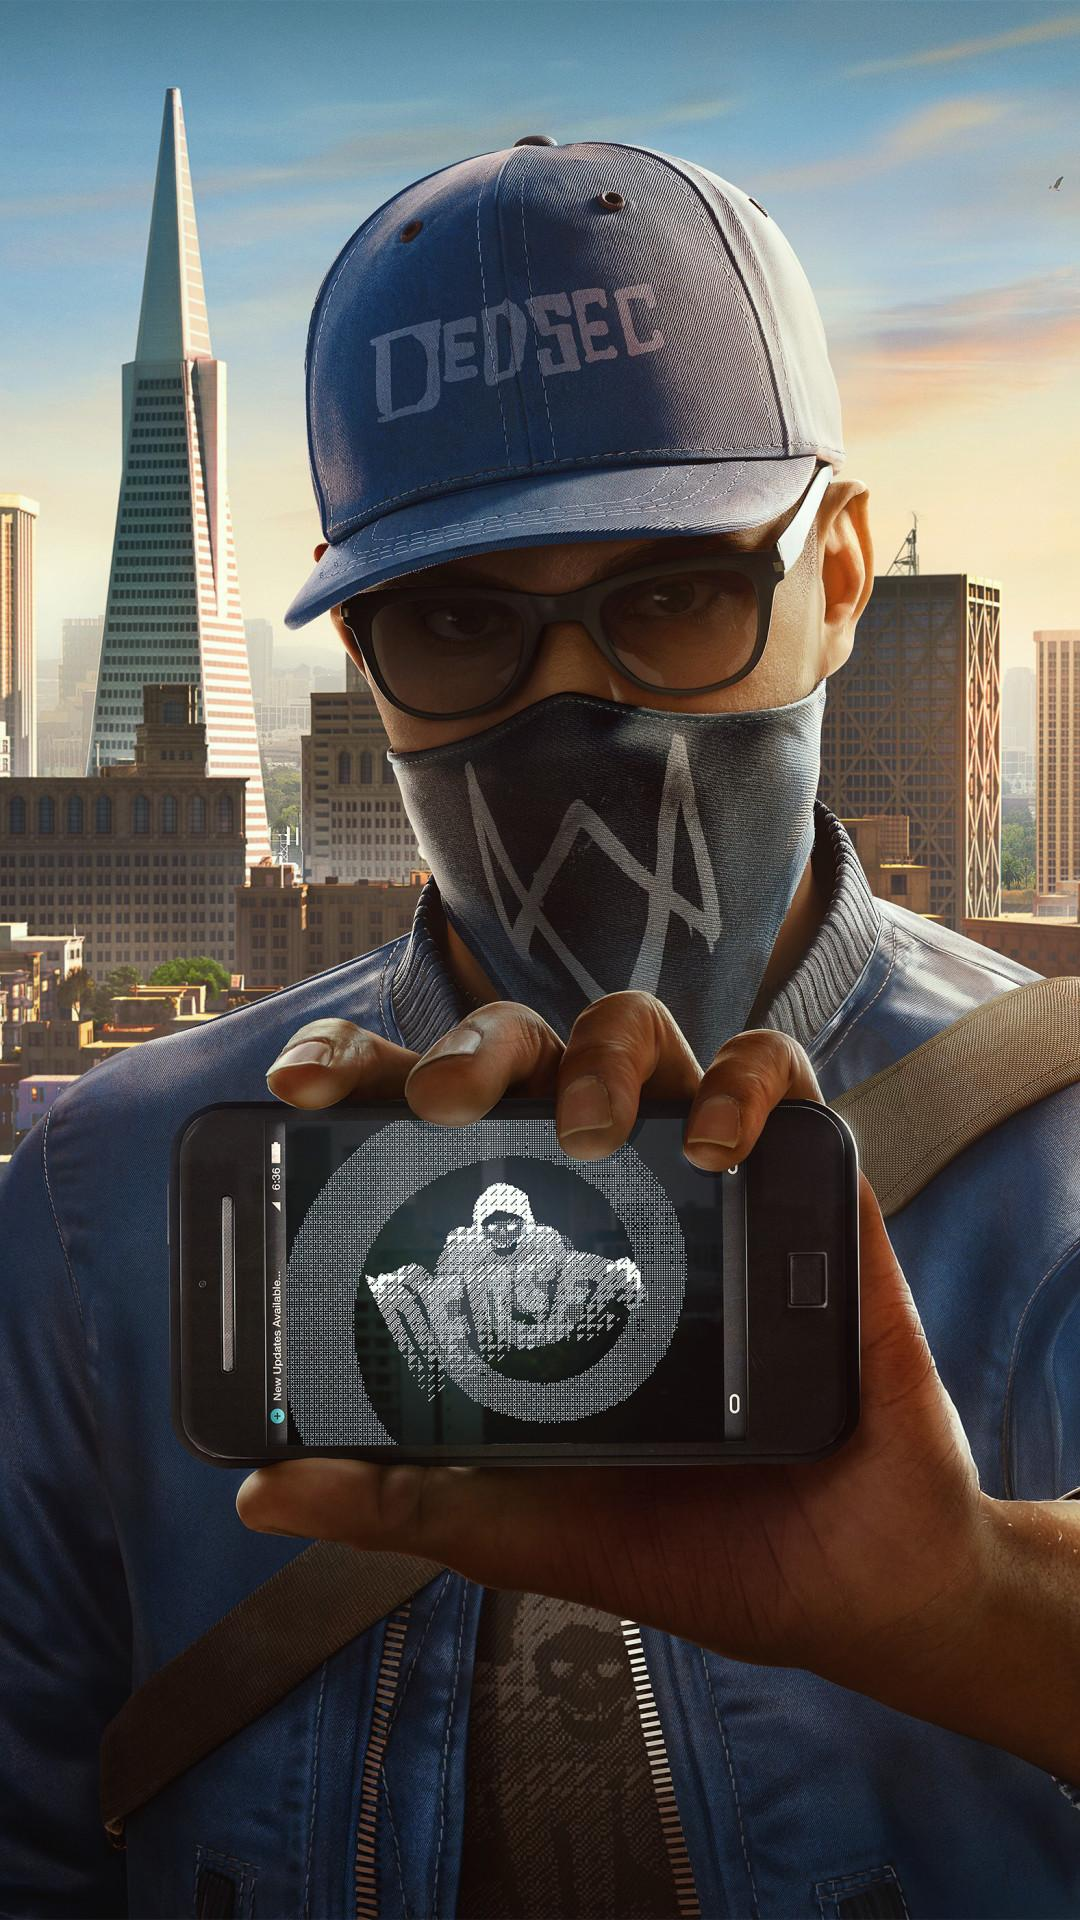 Watch Dogs 2 Hd Android Wallpapers - Wallpaper Cave